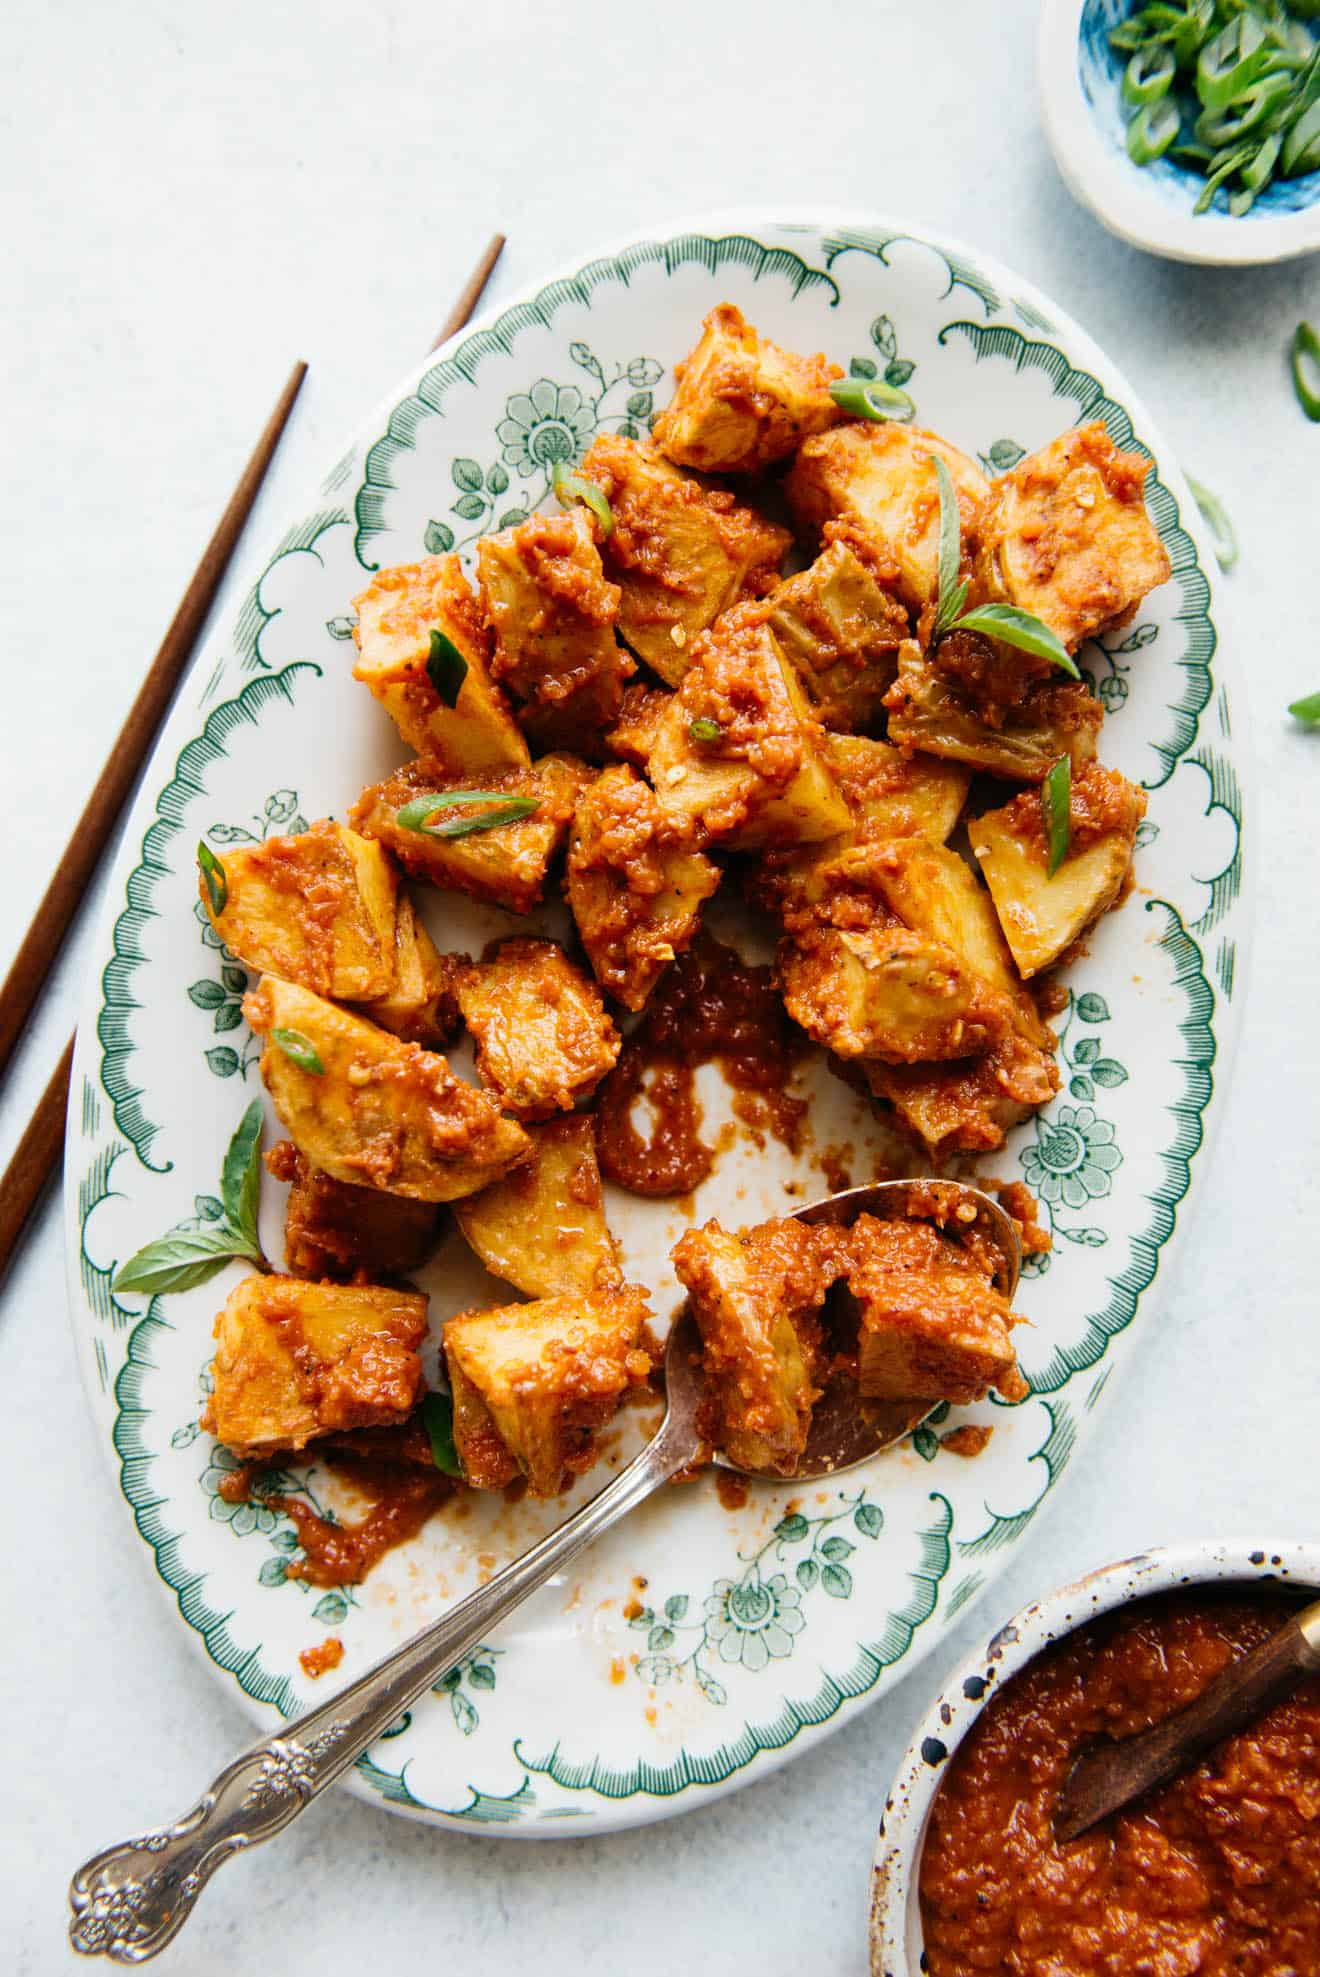 Sambal Potatoes - an easy vegan side dish that is filled with Southeast Asian spices. It's spicy, tangy and so addictive!